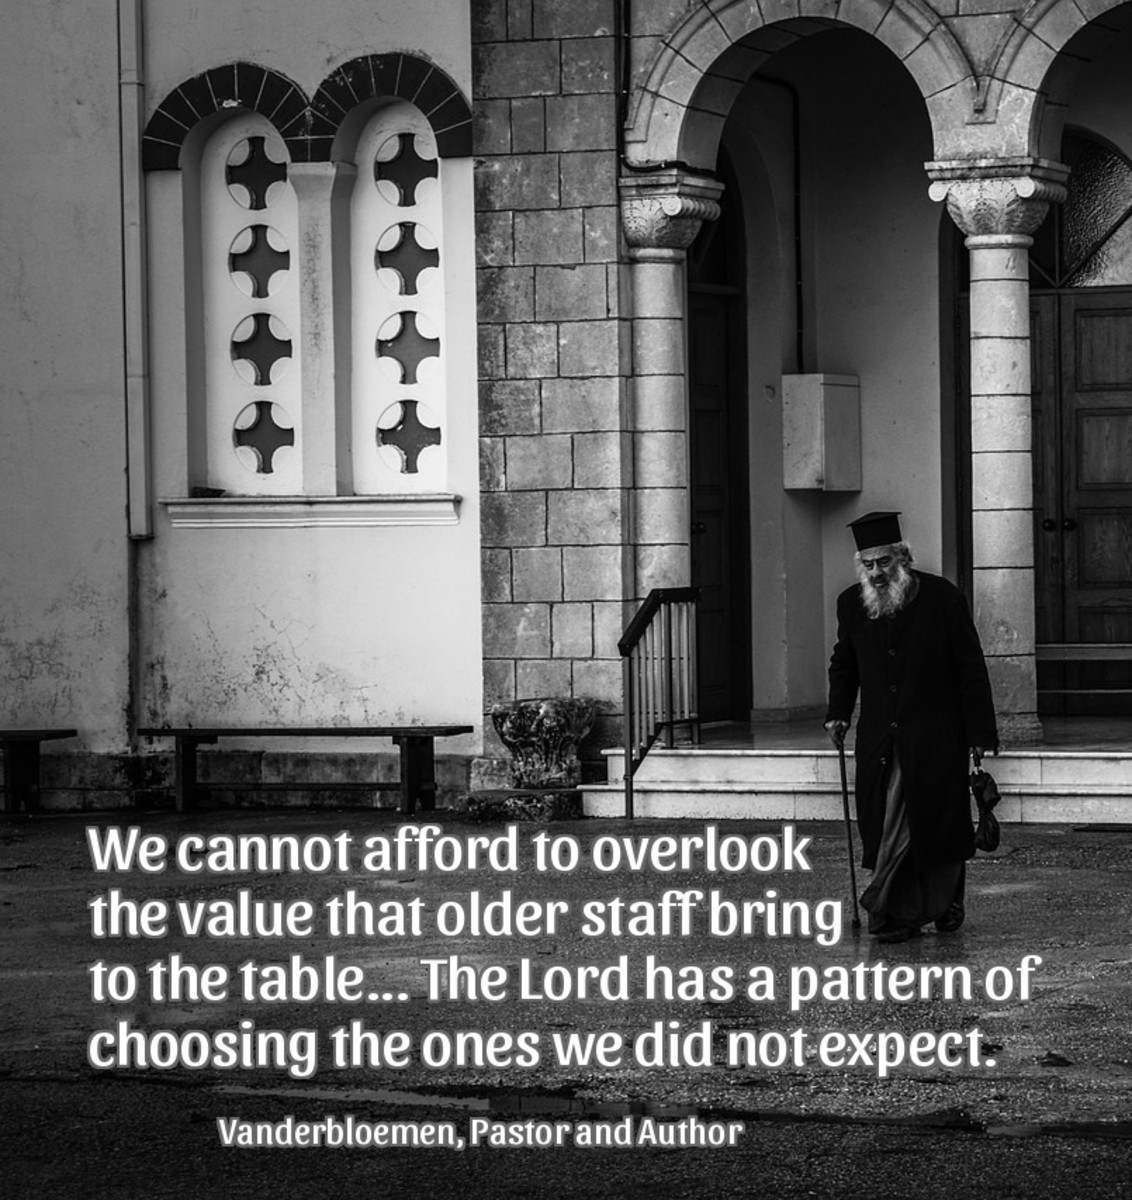 We cannot afford to overlook the value that older staff bring to the table.